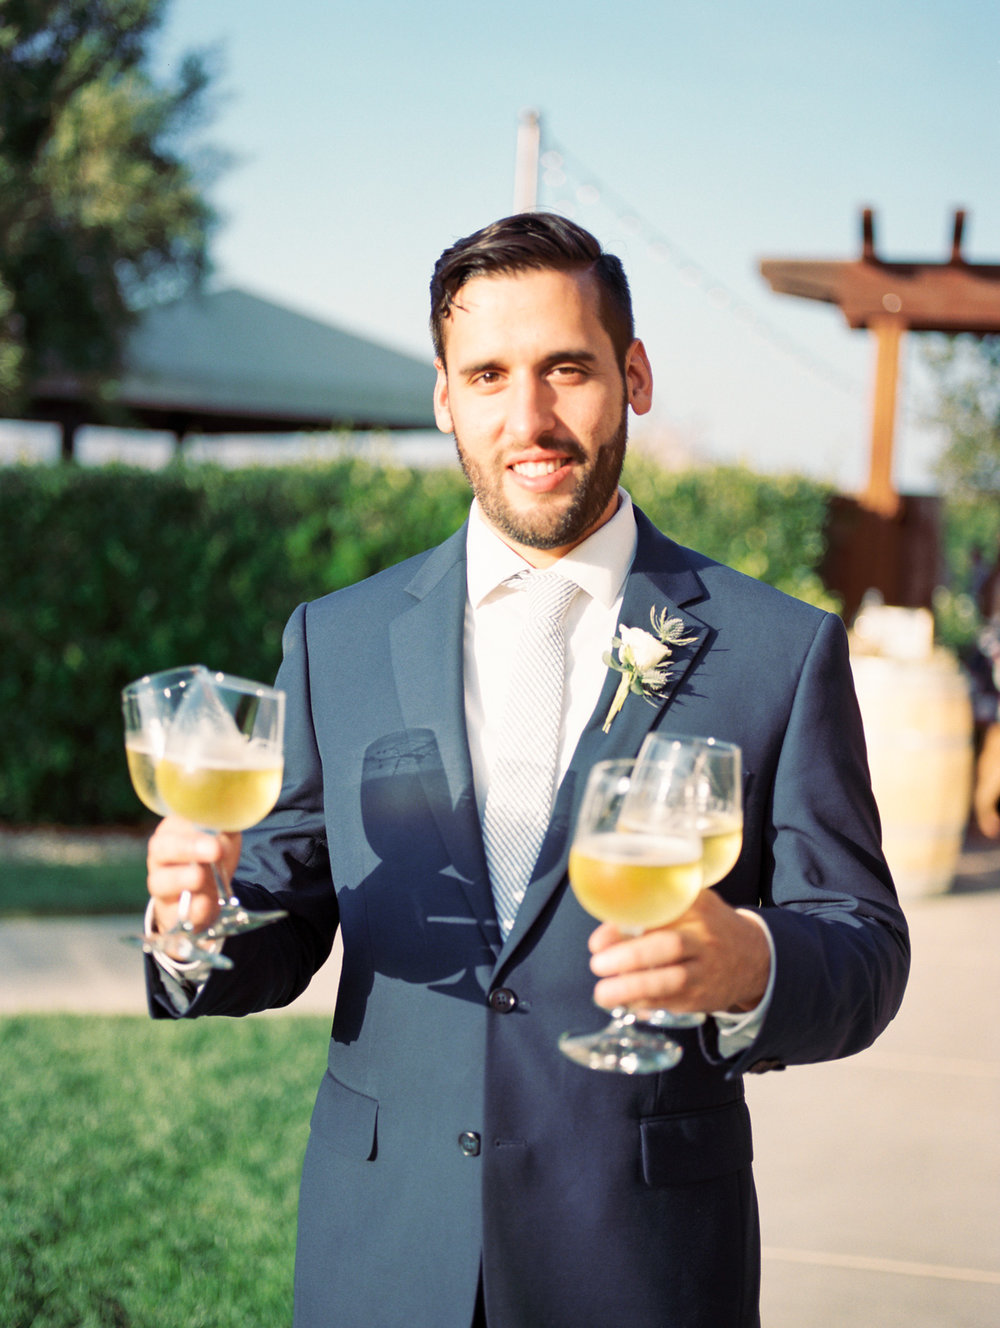 Groomsmen carrying 4 glasses of wine